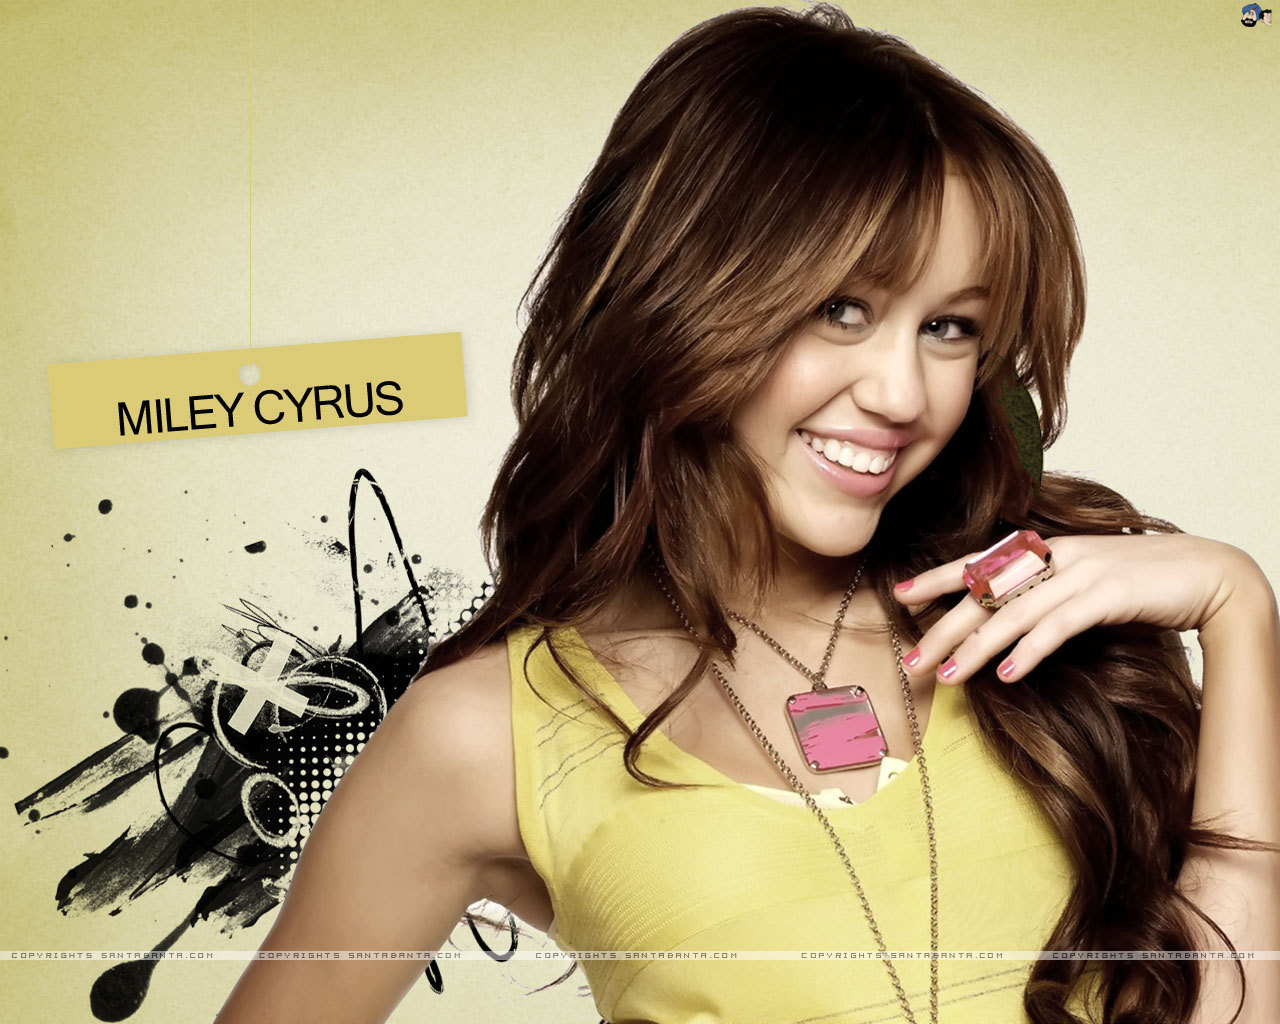 Is a cute Miley Cyrus nude photos 2019